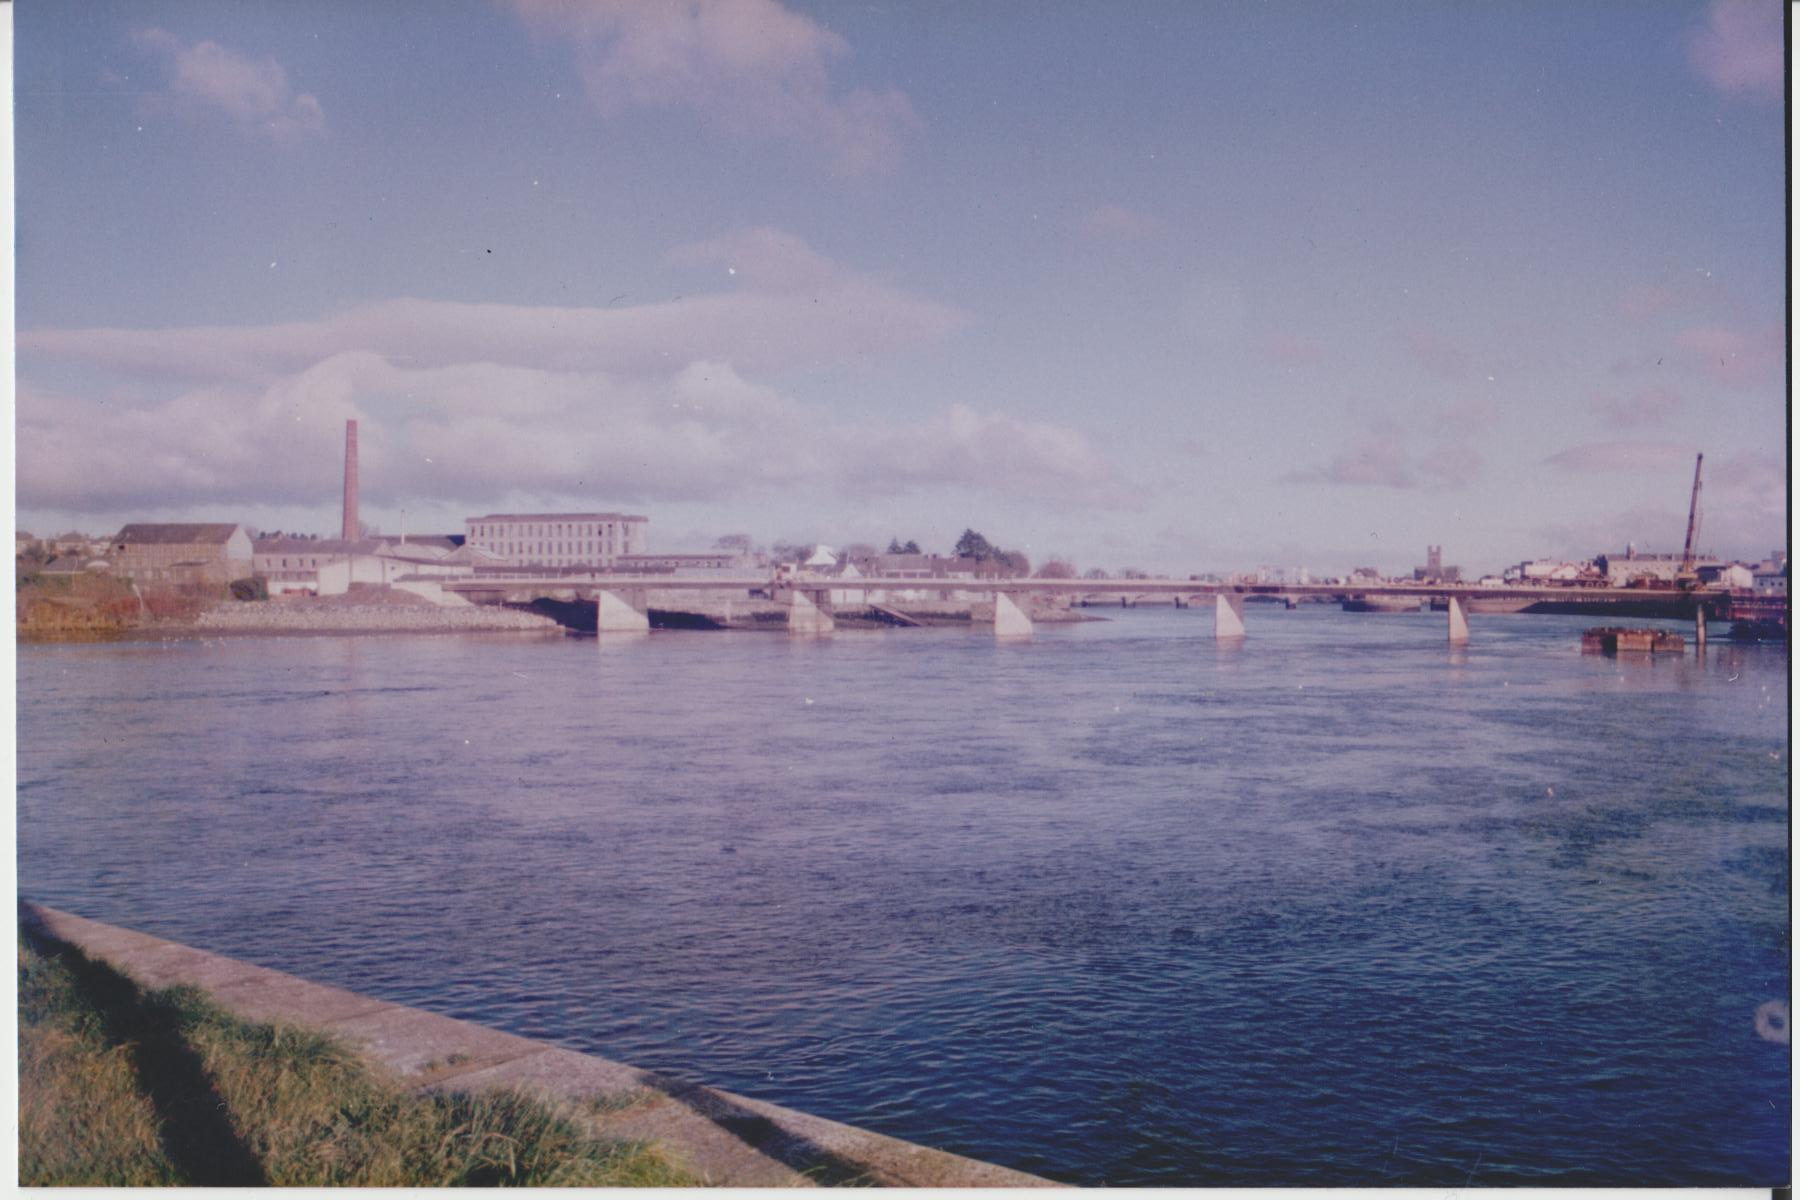 Shannon Bridge – The last bridge on the Shannon